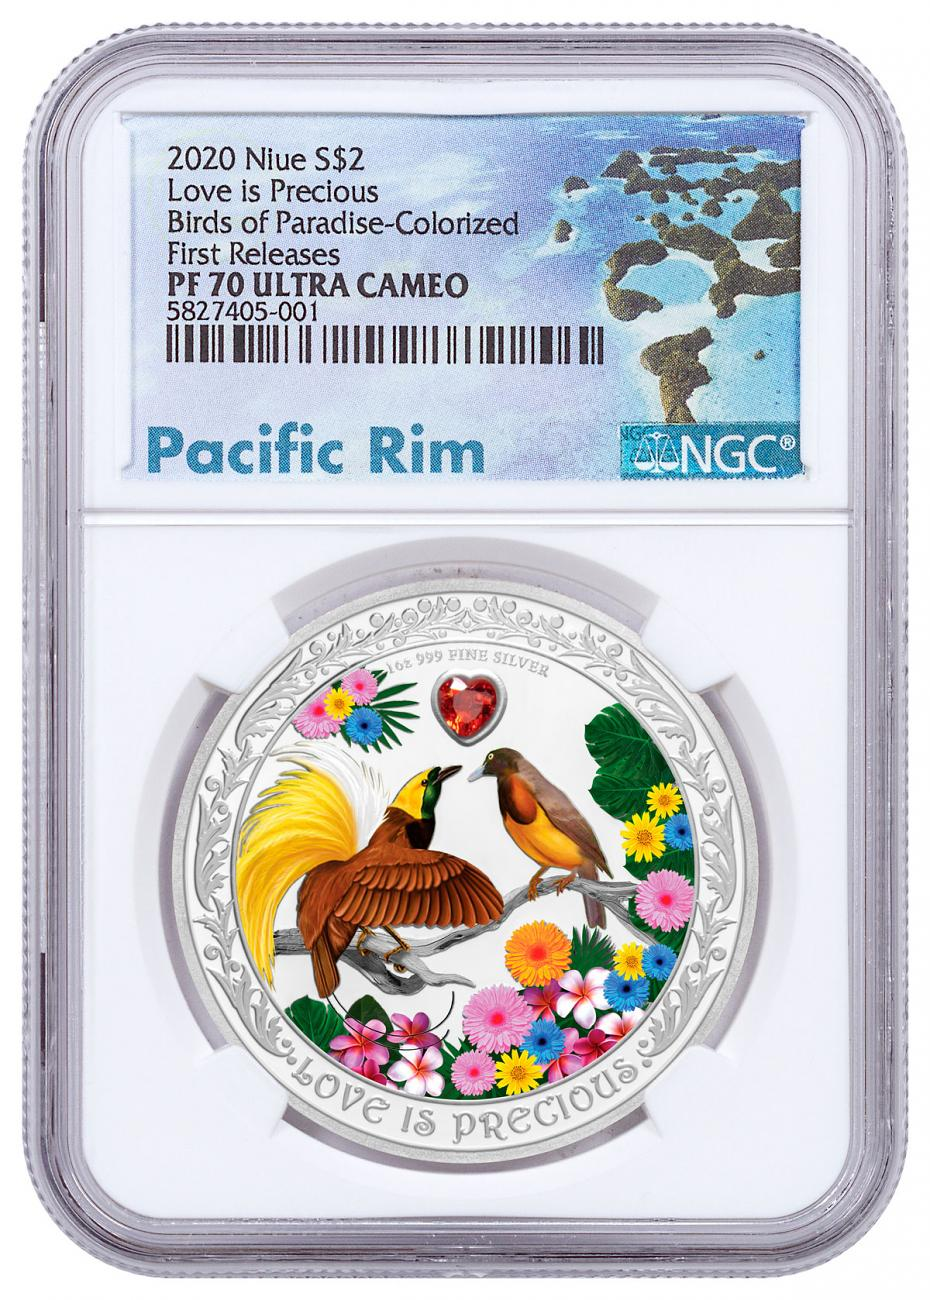 2020 Niue Love is Precious - Birds of Paradise 1 oz Silver Colorized Proof $2 Coin NGC PF70 UC FR Exclusive Pacific Rim Label